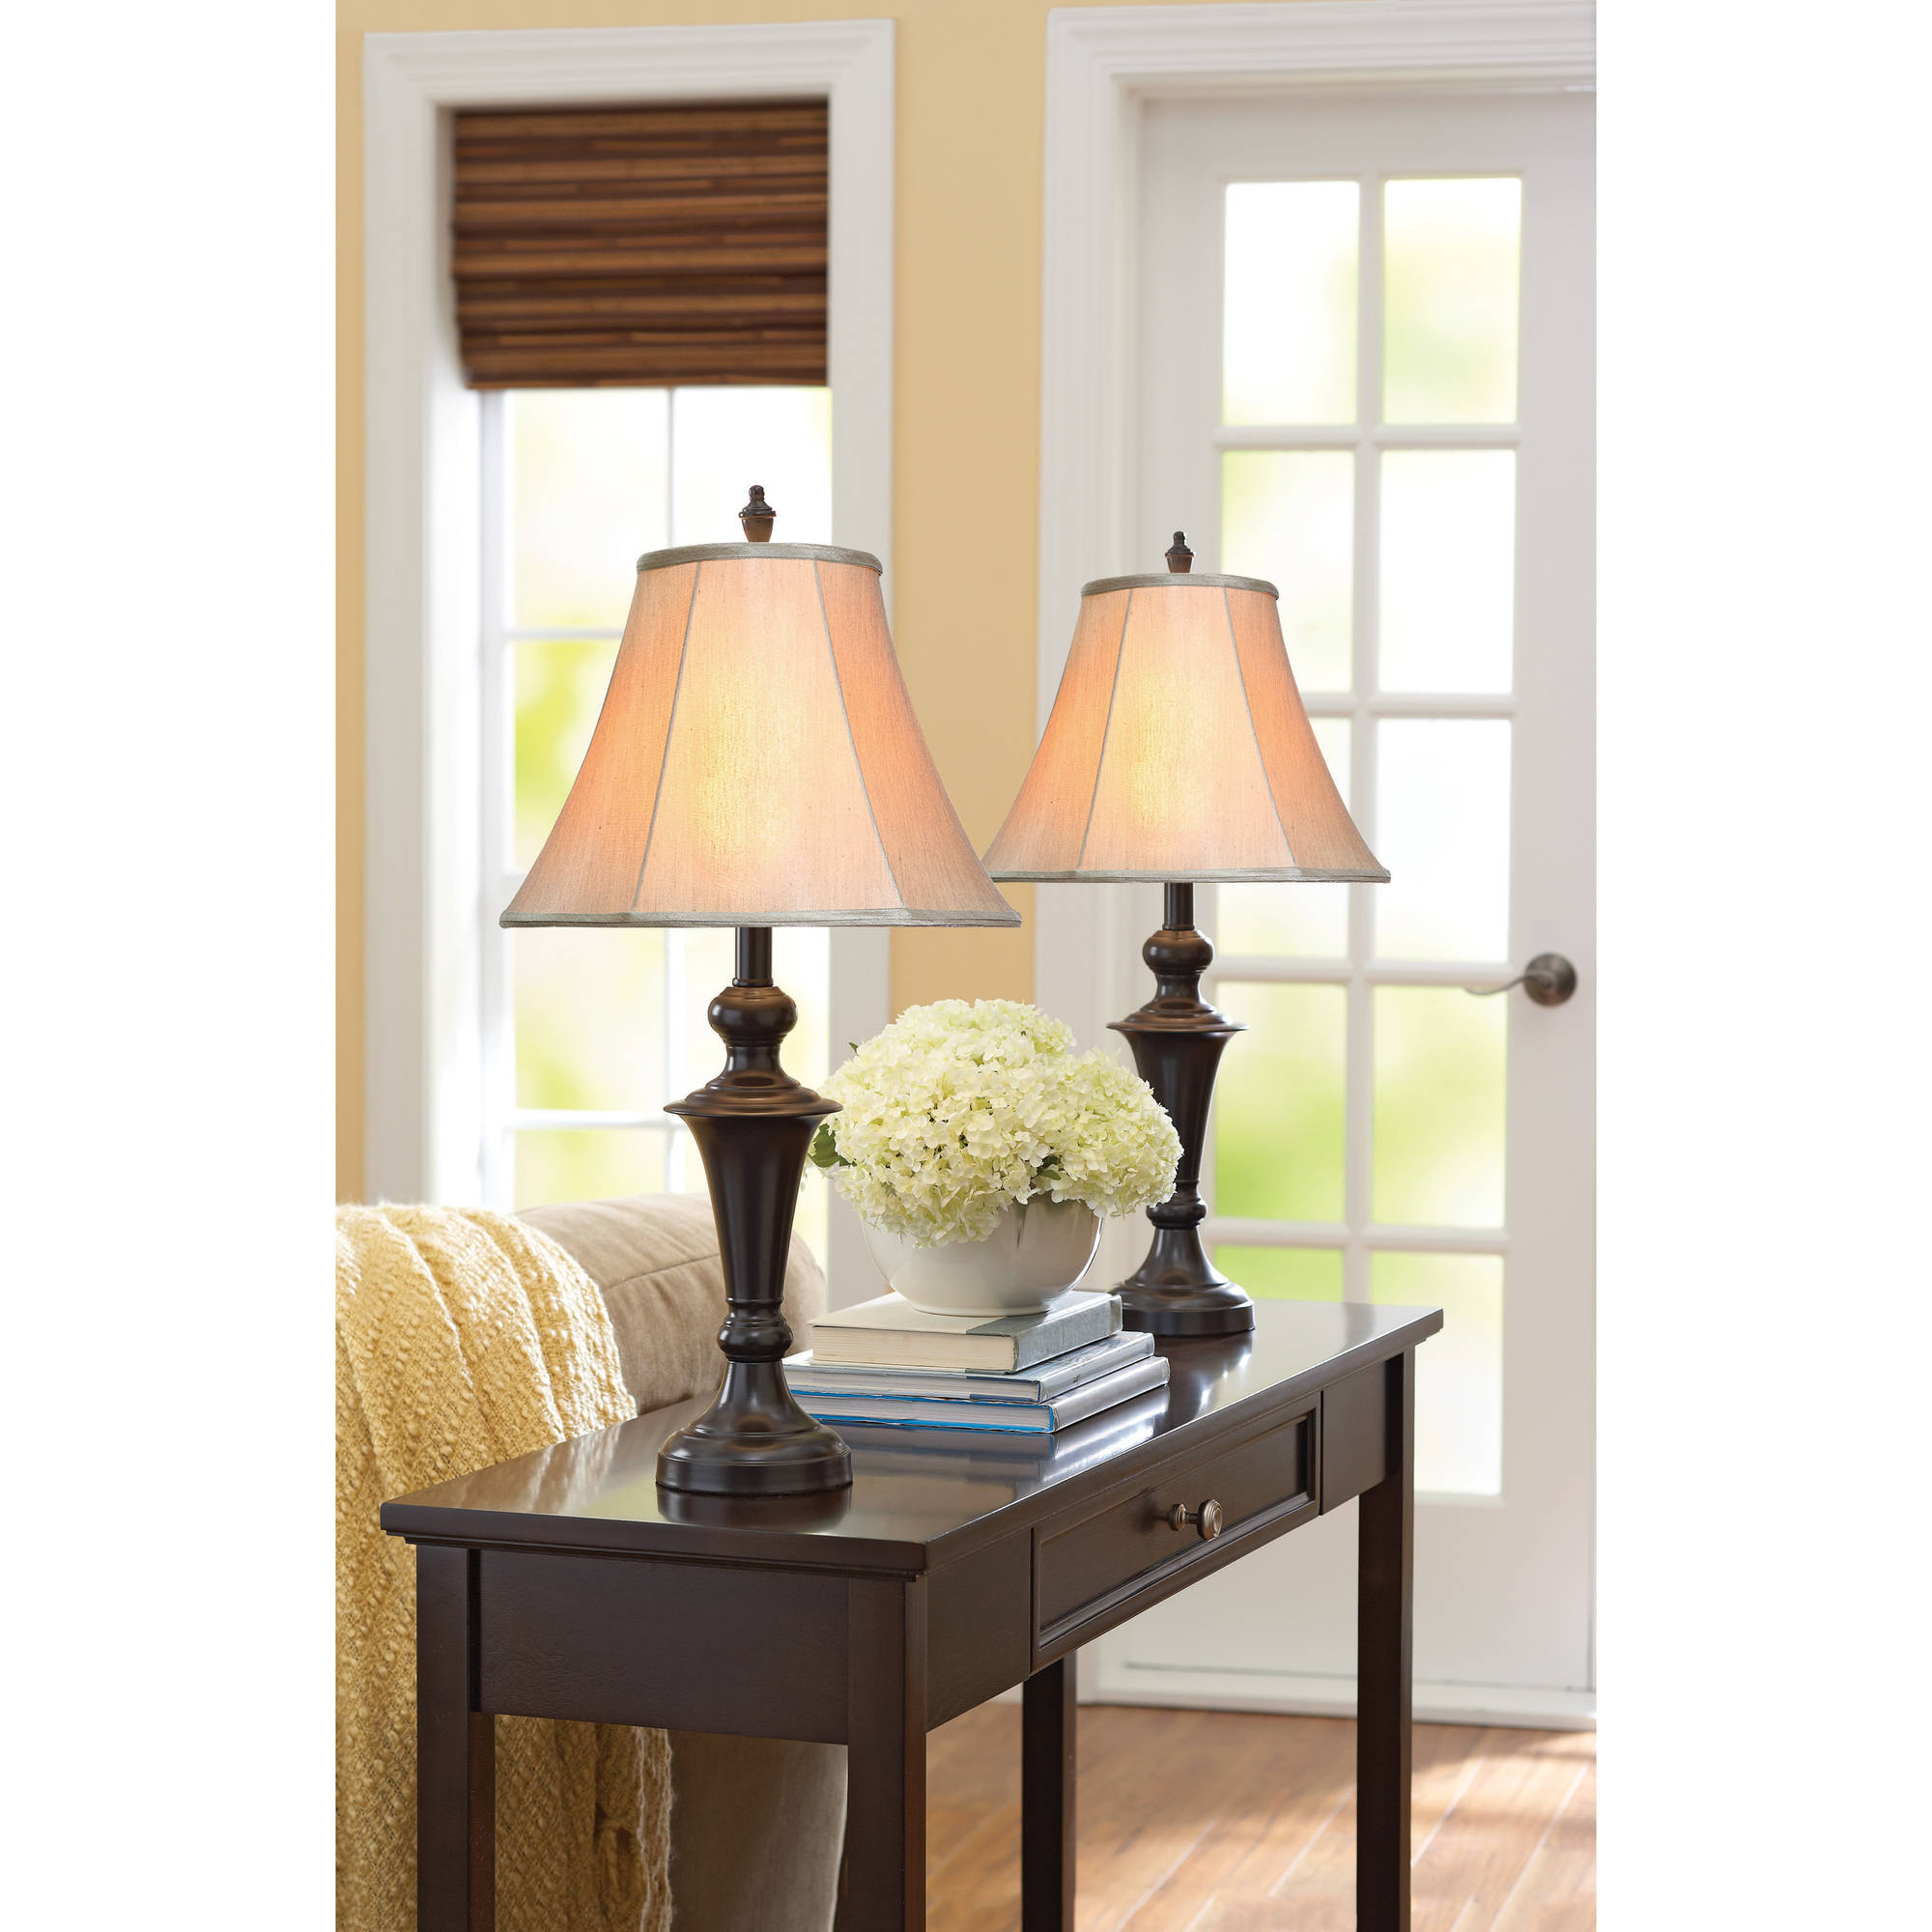 Better Homes And Gardens Table Lamps 2 Pack